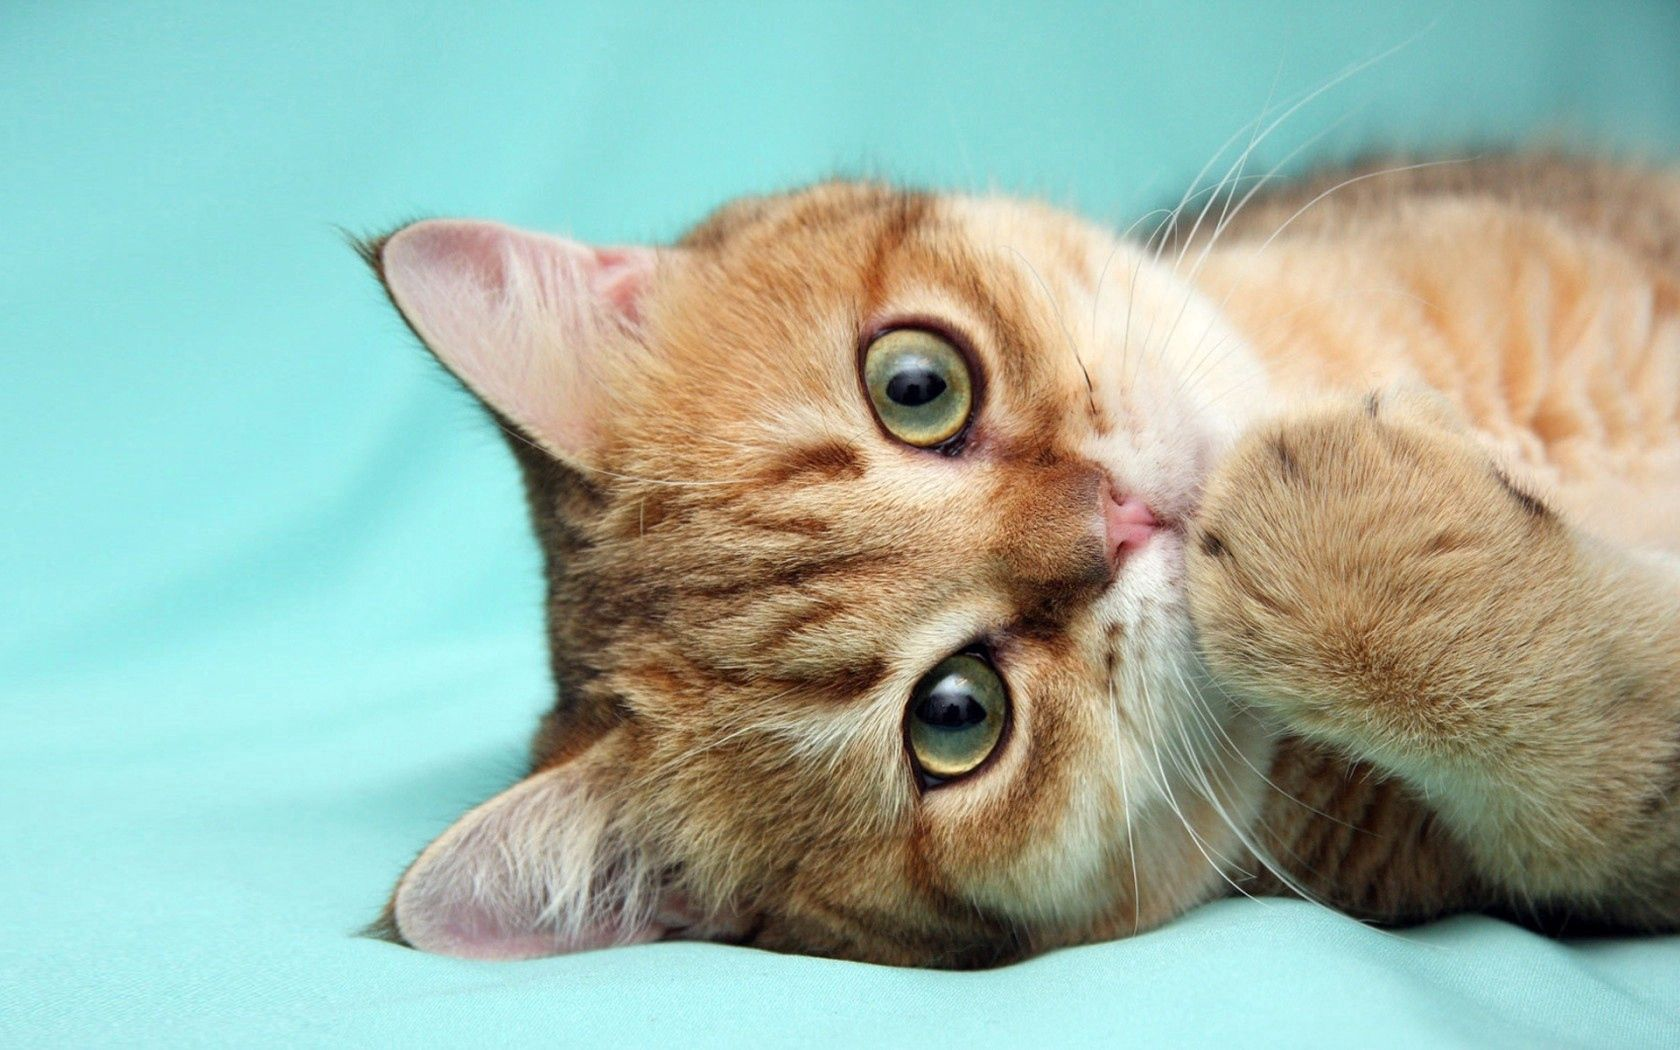 107834 download wallpaper Animals, Cat, Redhead, Paw screensavers and pictures for free